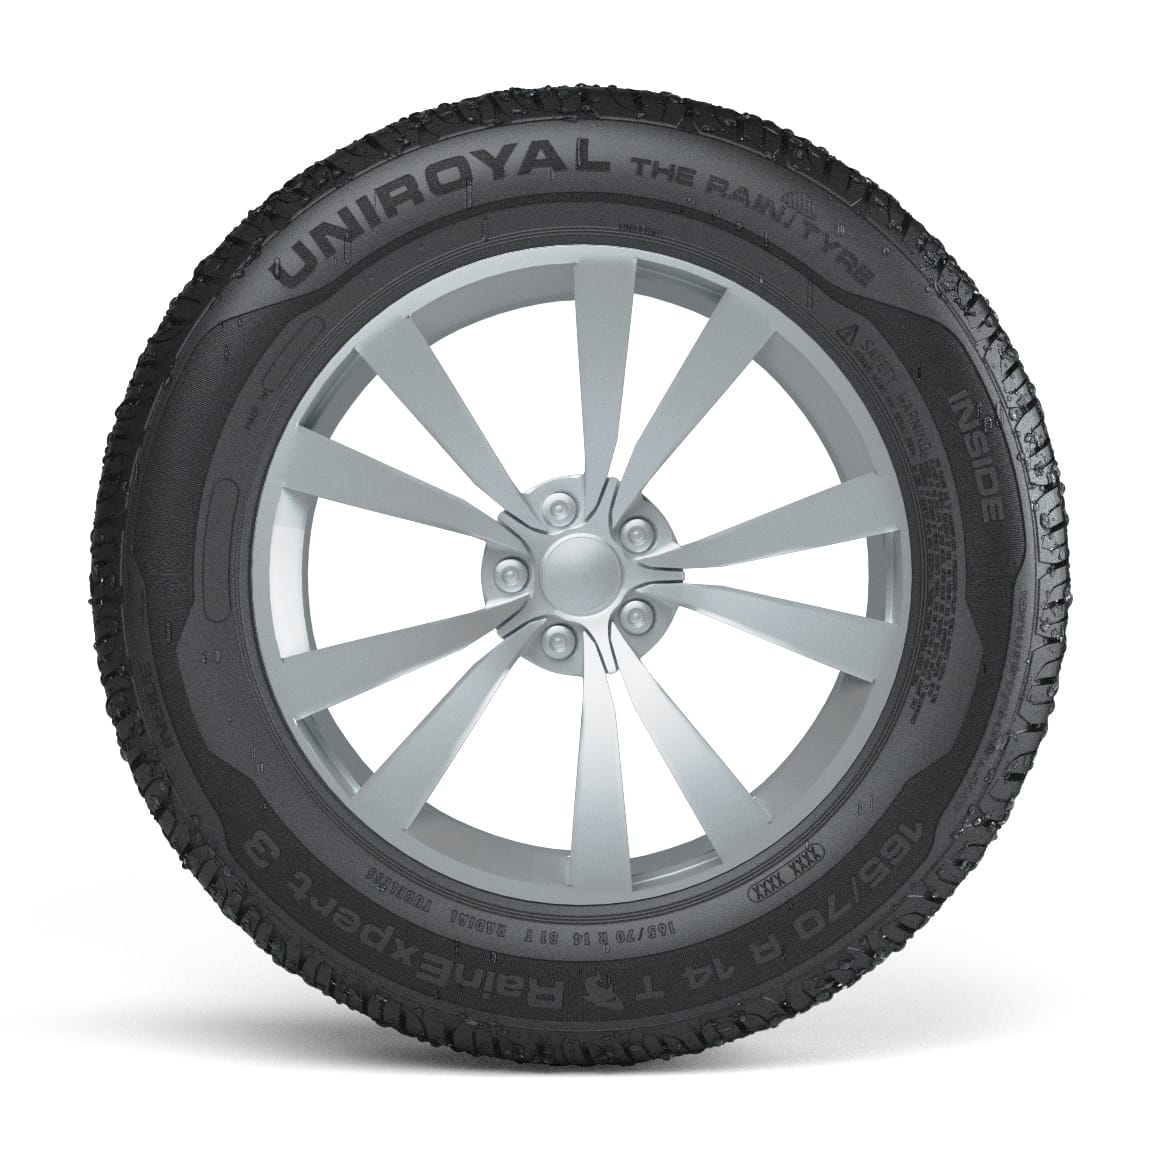 uniroyal rainexpert 3 the summer tyre for wet roads. Black Bedroom Furniture Sets. Home Design Ideas